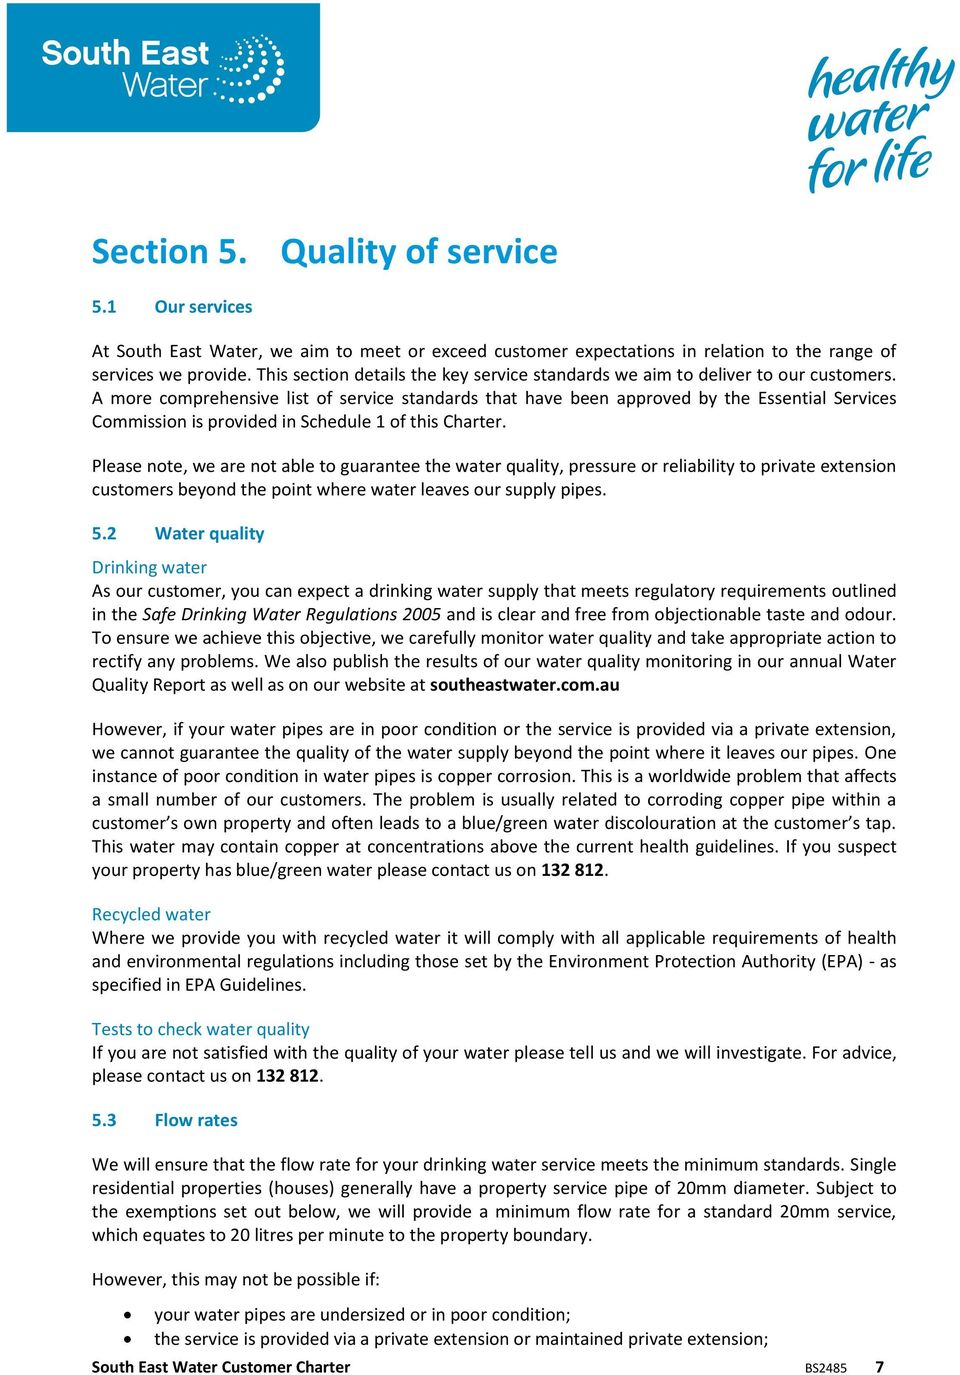 A more comprehensive list of service standards that have been approved by the Essential Services Commission is provided in Schedule 1 of this Charter.